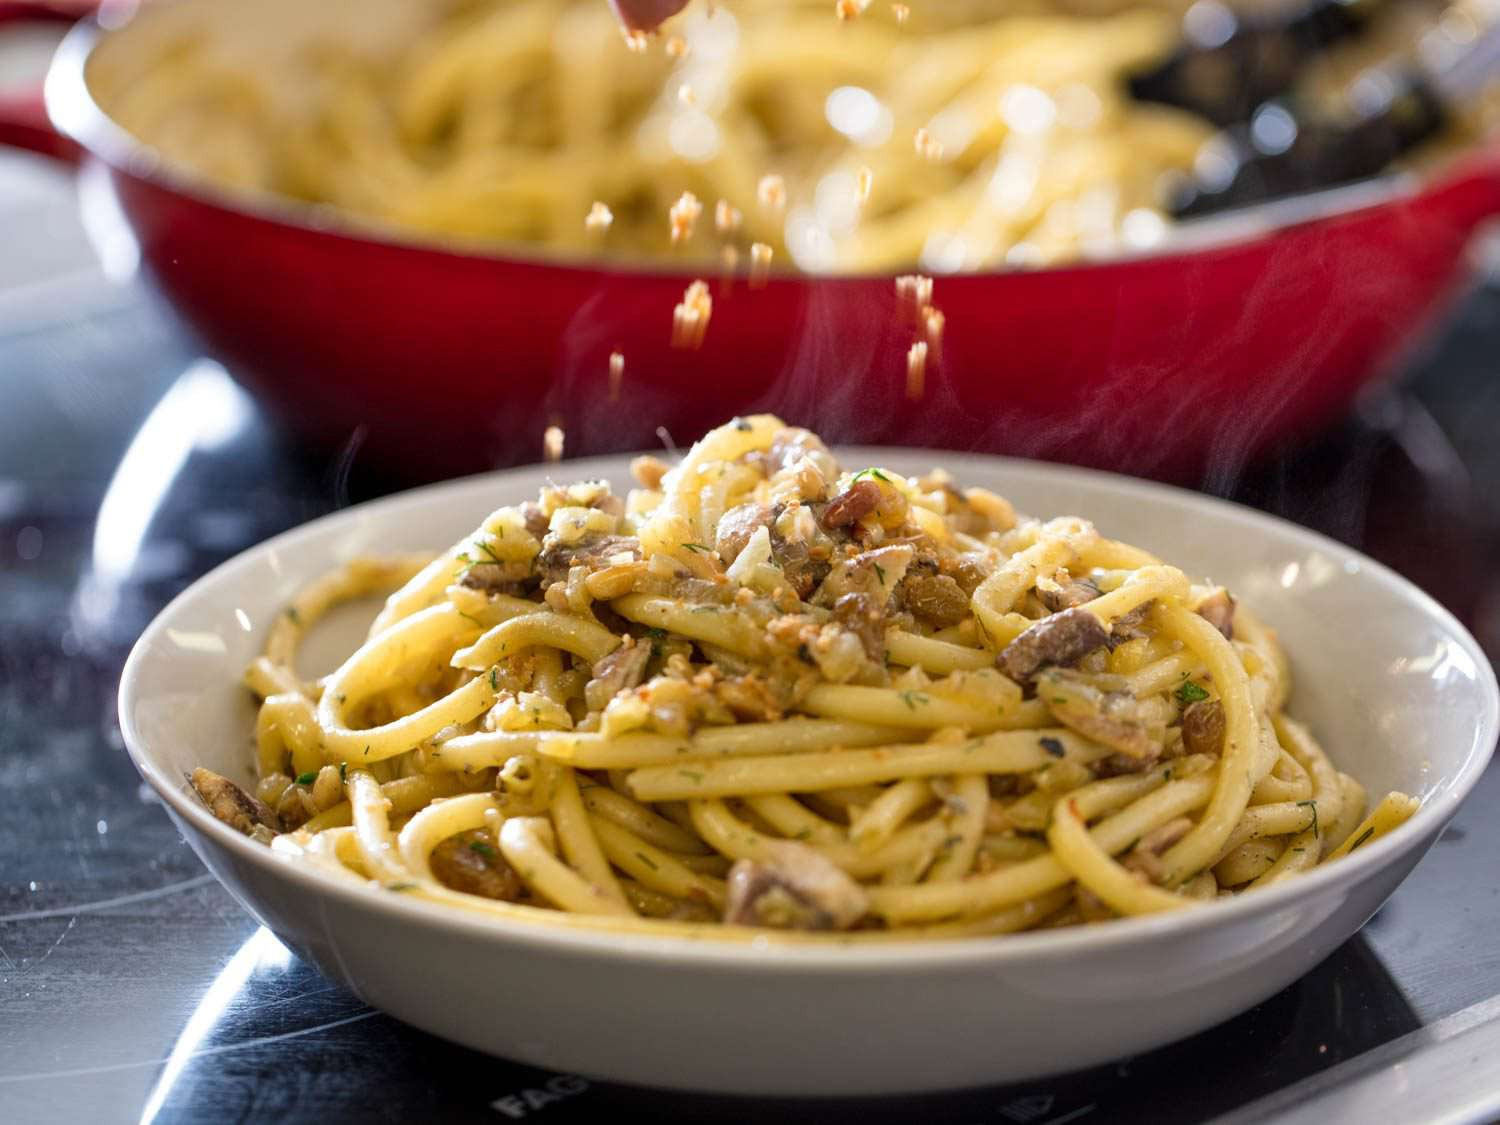 Sprinkling additional breadcrumbs over a finished dish of Sicilian pasta with sardines.